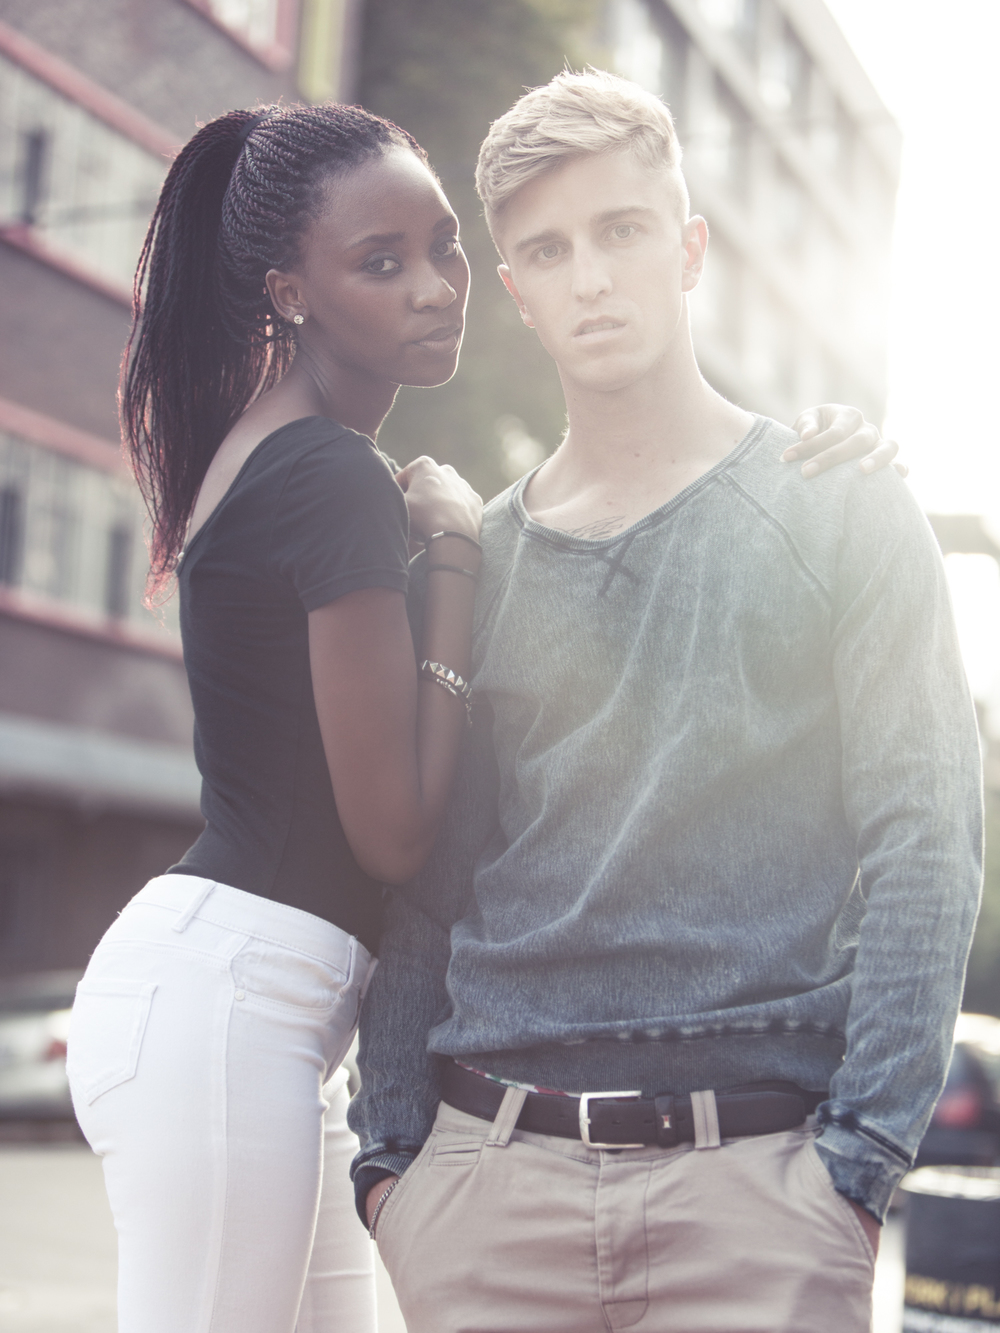 tim gerges nokwazi joburg model fashion photographer-4704.jpg